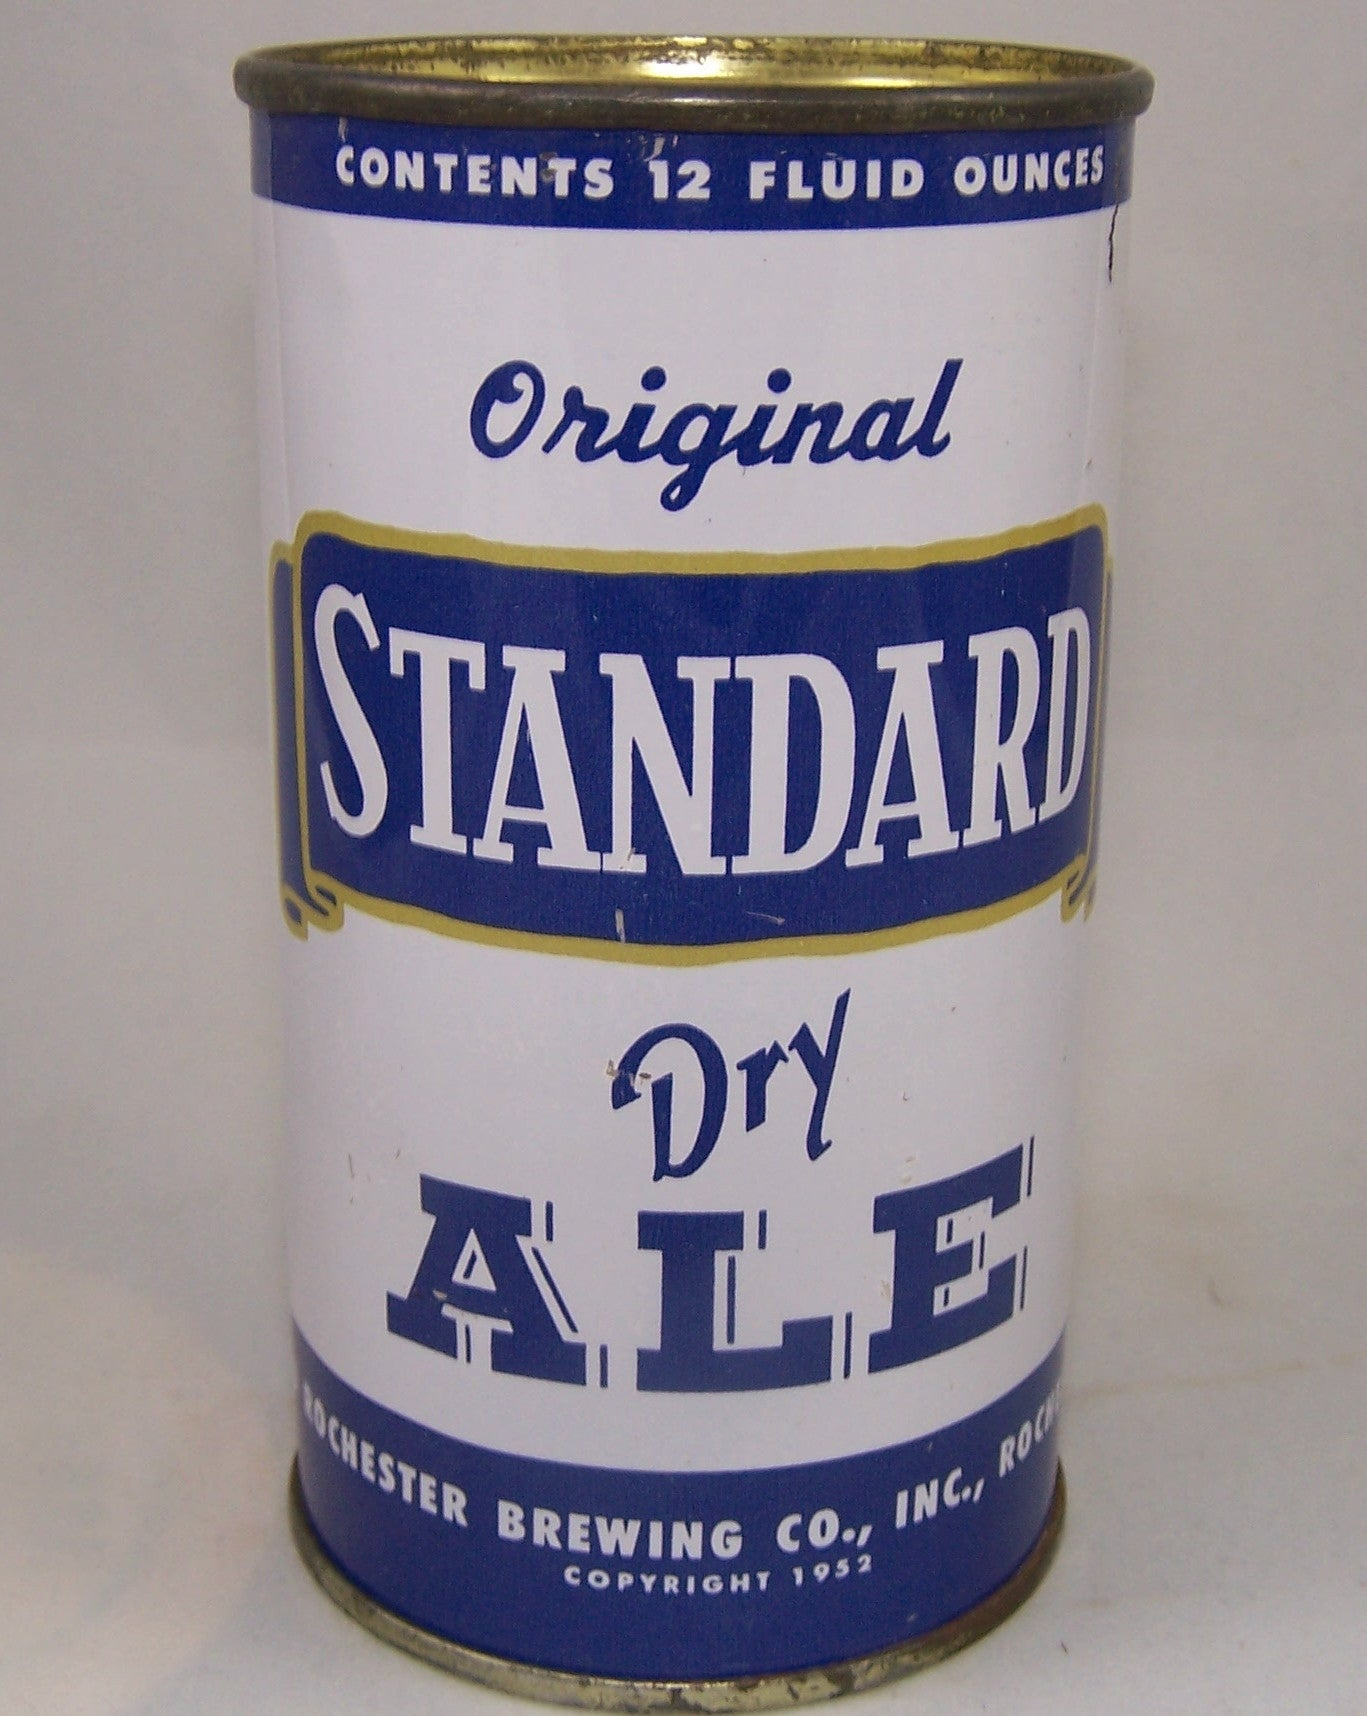 Standard Dry Ale, USBC 135-32, Grade 1/1- Sold on 9/22/15